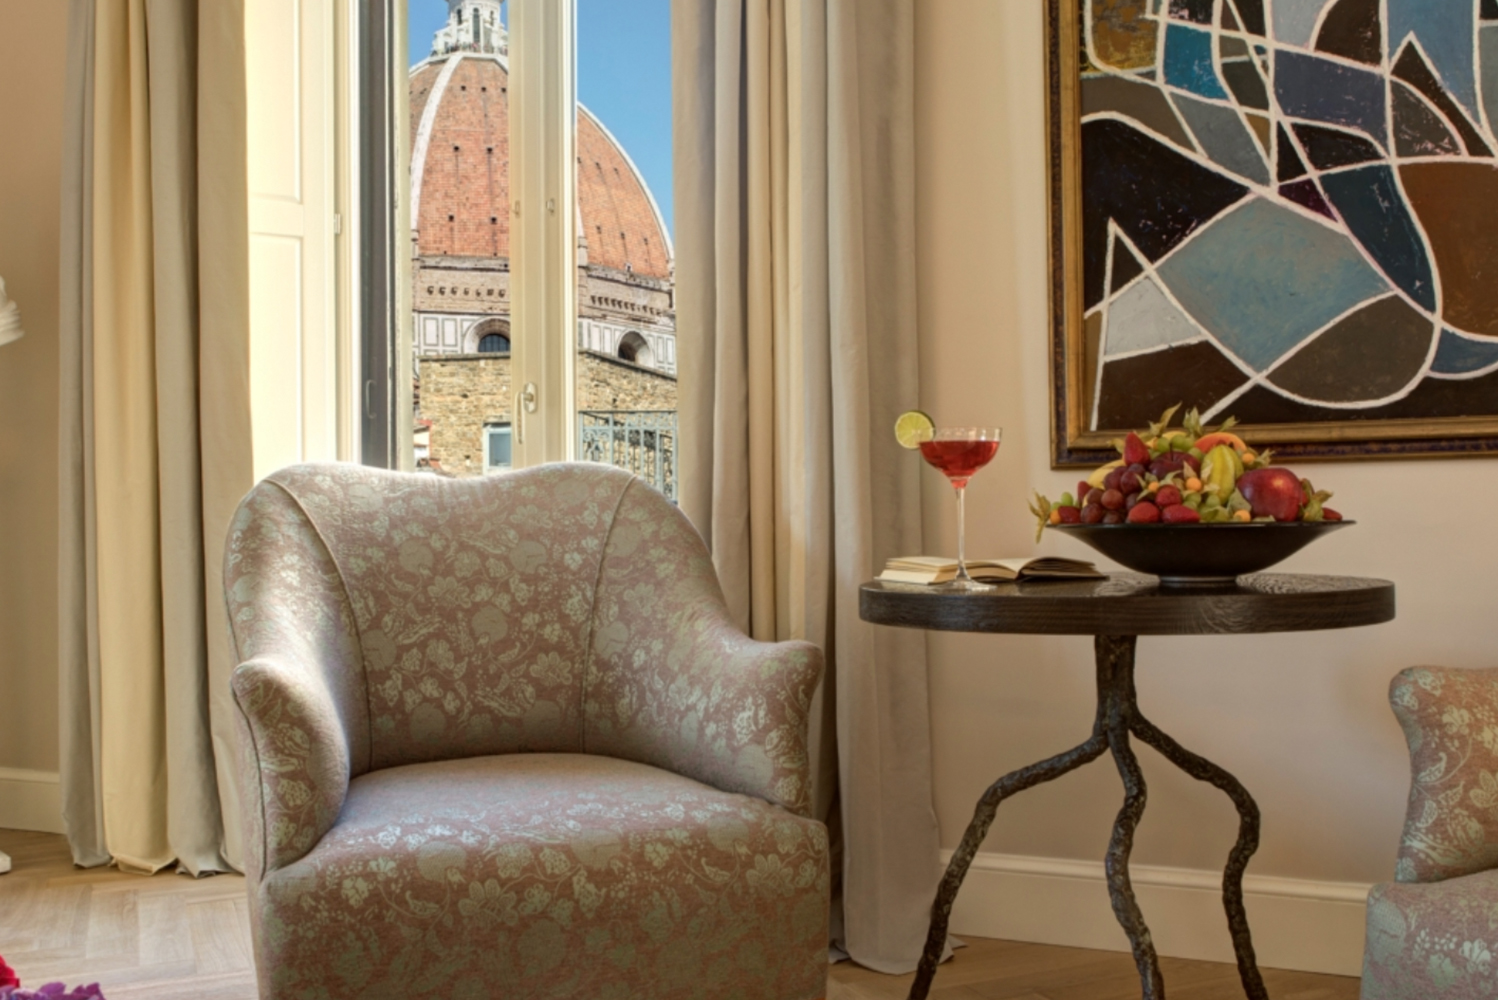 The 1,600-square-foot accommodation, which occupies its own wing of the hotel, has a distinctive Florentine aesthetic.